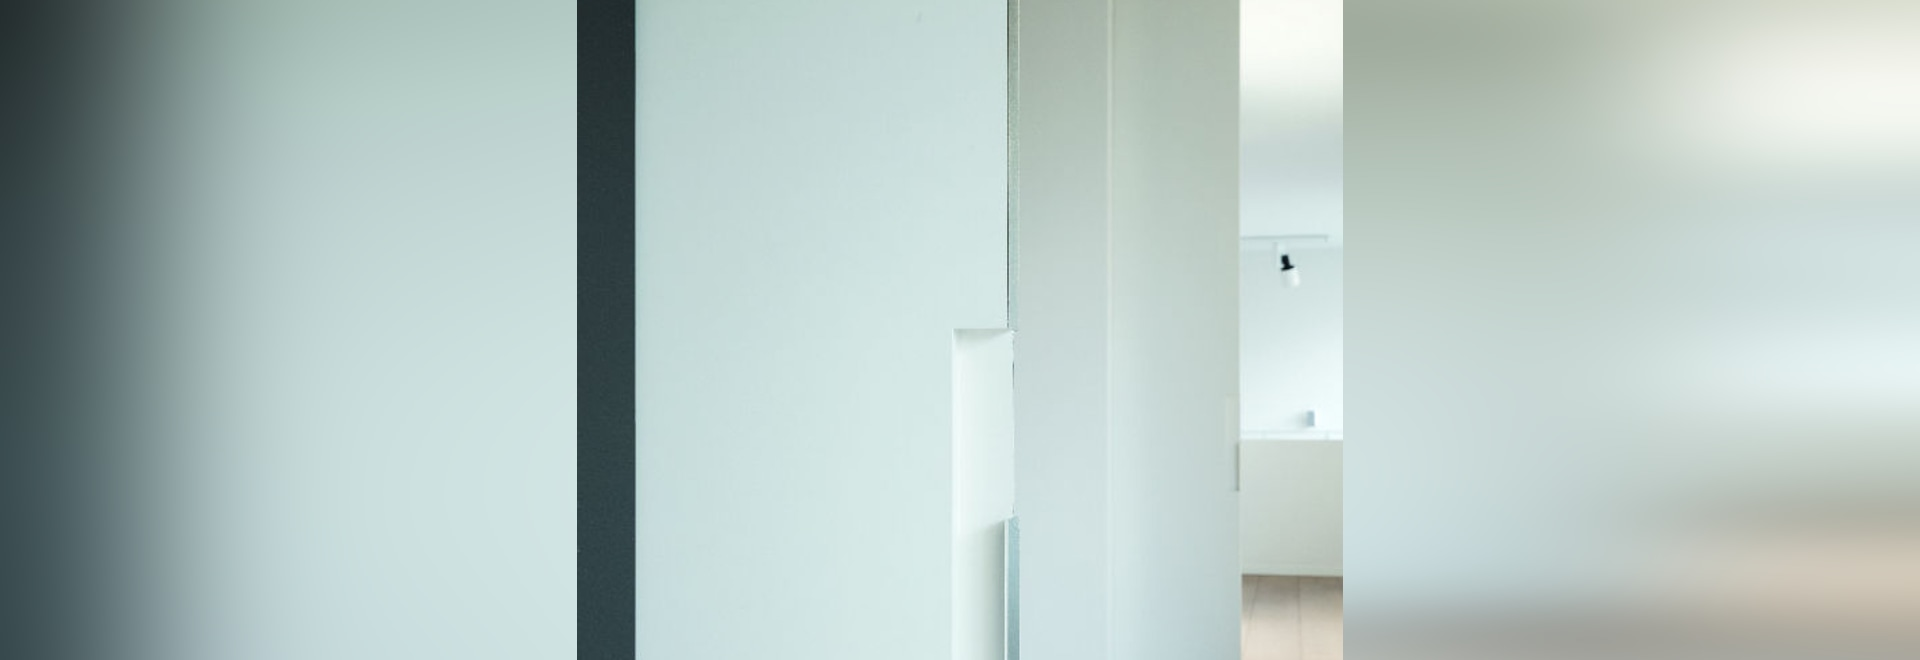 NEW: glass sliding door system by XINNIX DOOR SYSTEMS